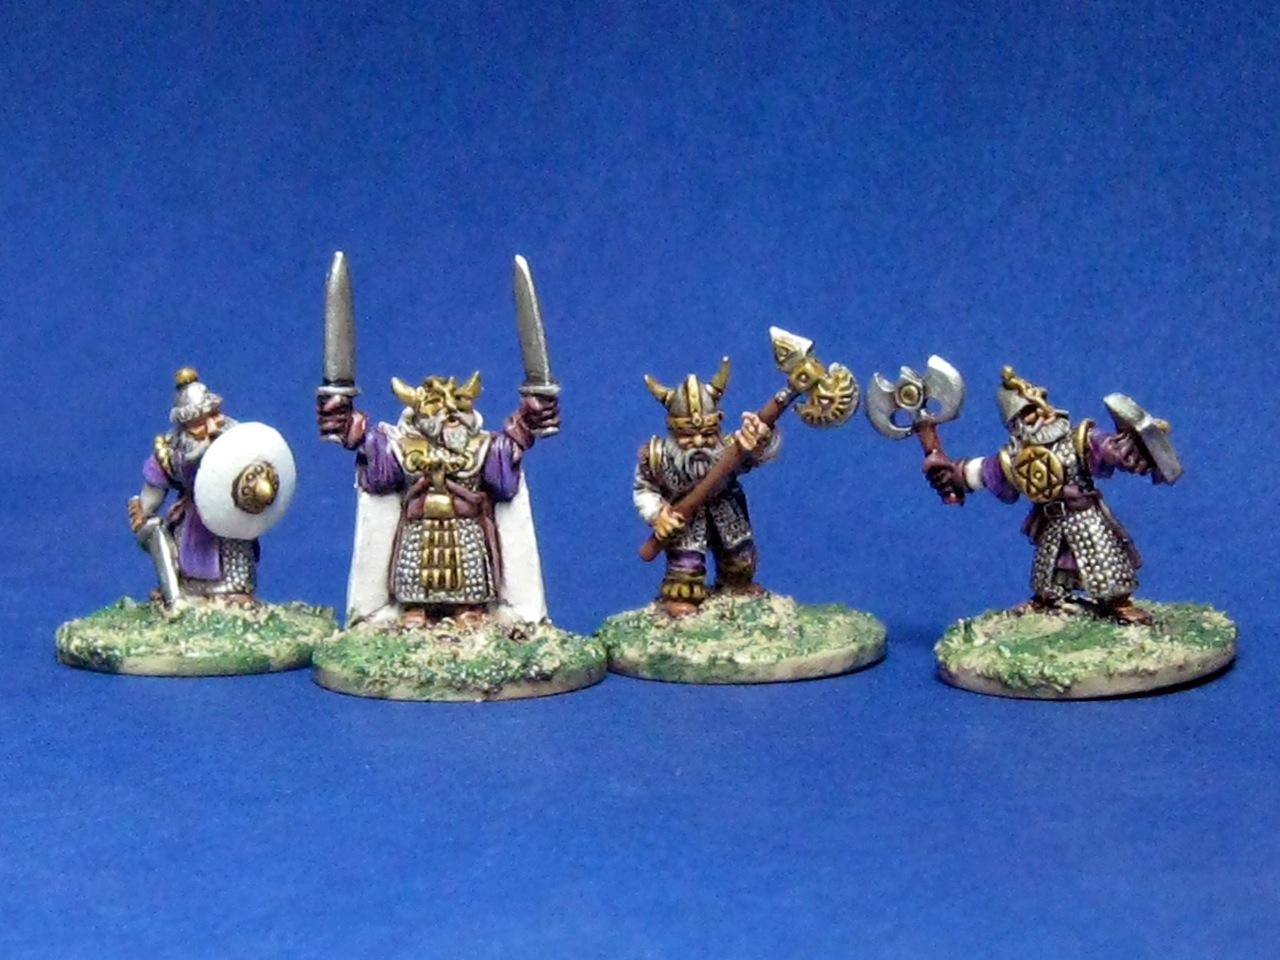 15mm dwarves from Back Raven